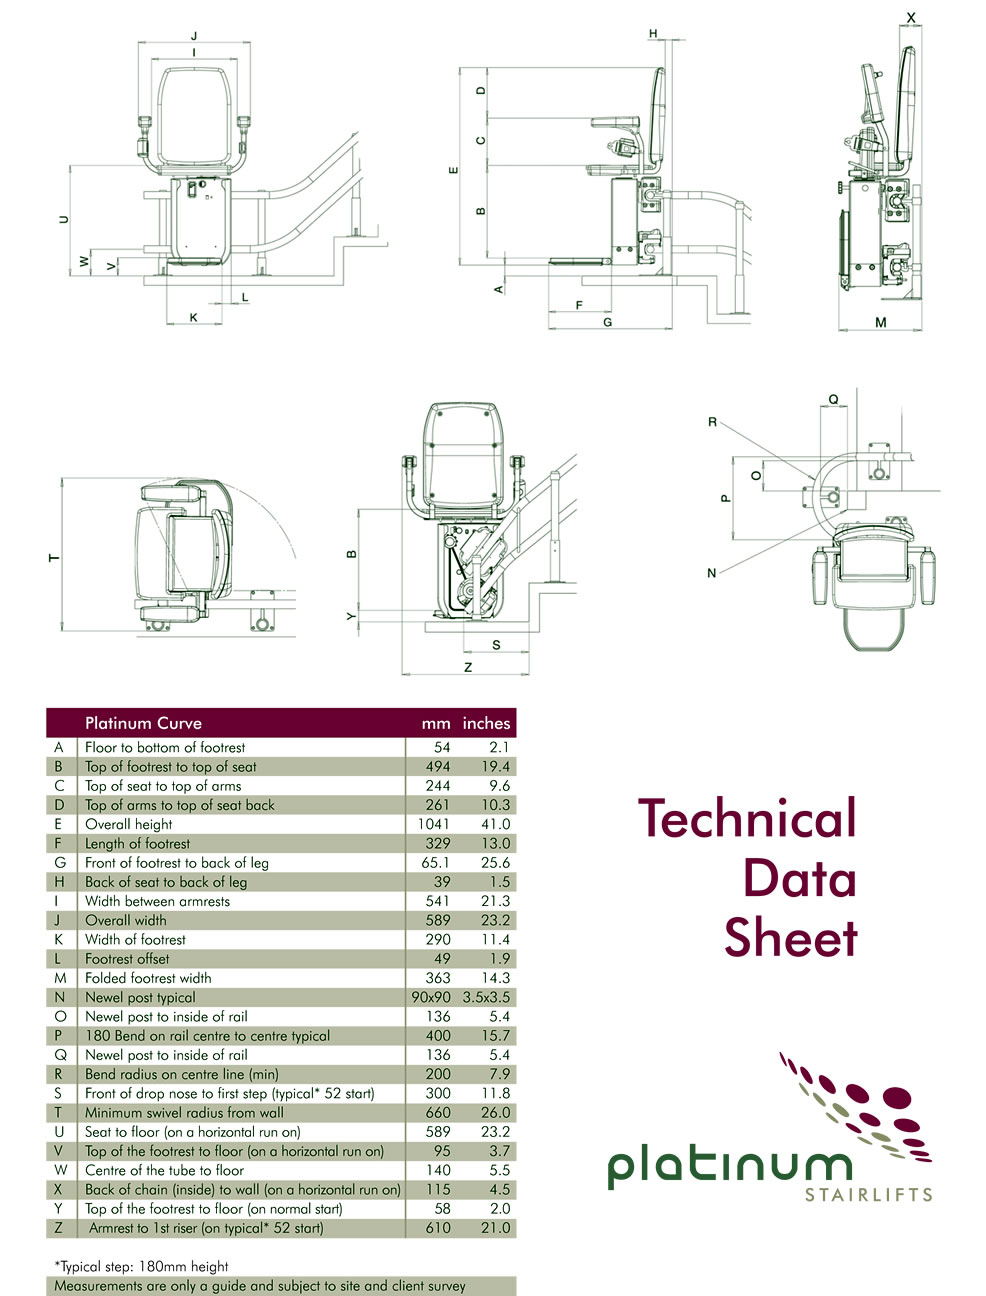 Platinum curved stairlift dimensions